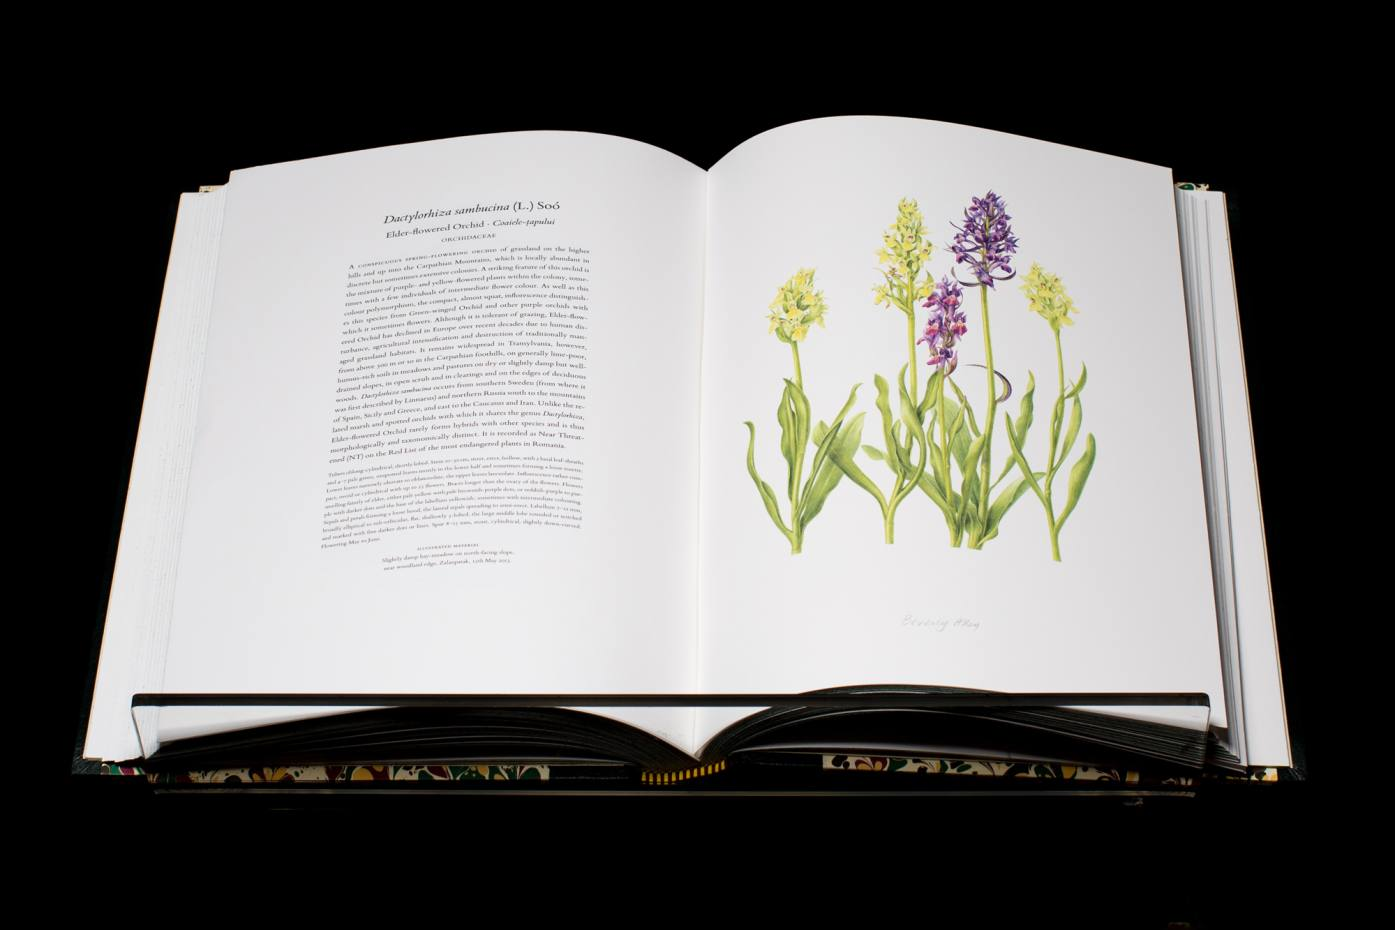 Every volume of The Transylvania Florilegium is signed by the Prince of Wales